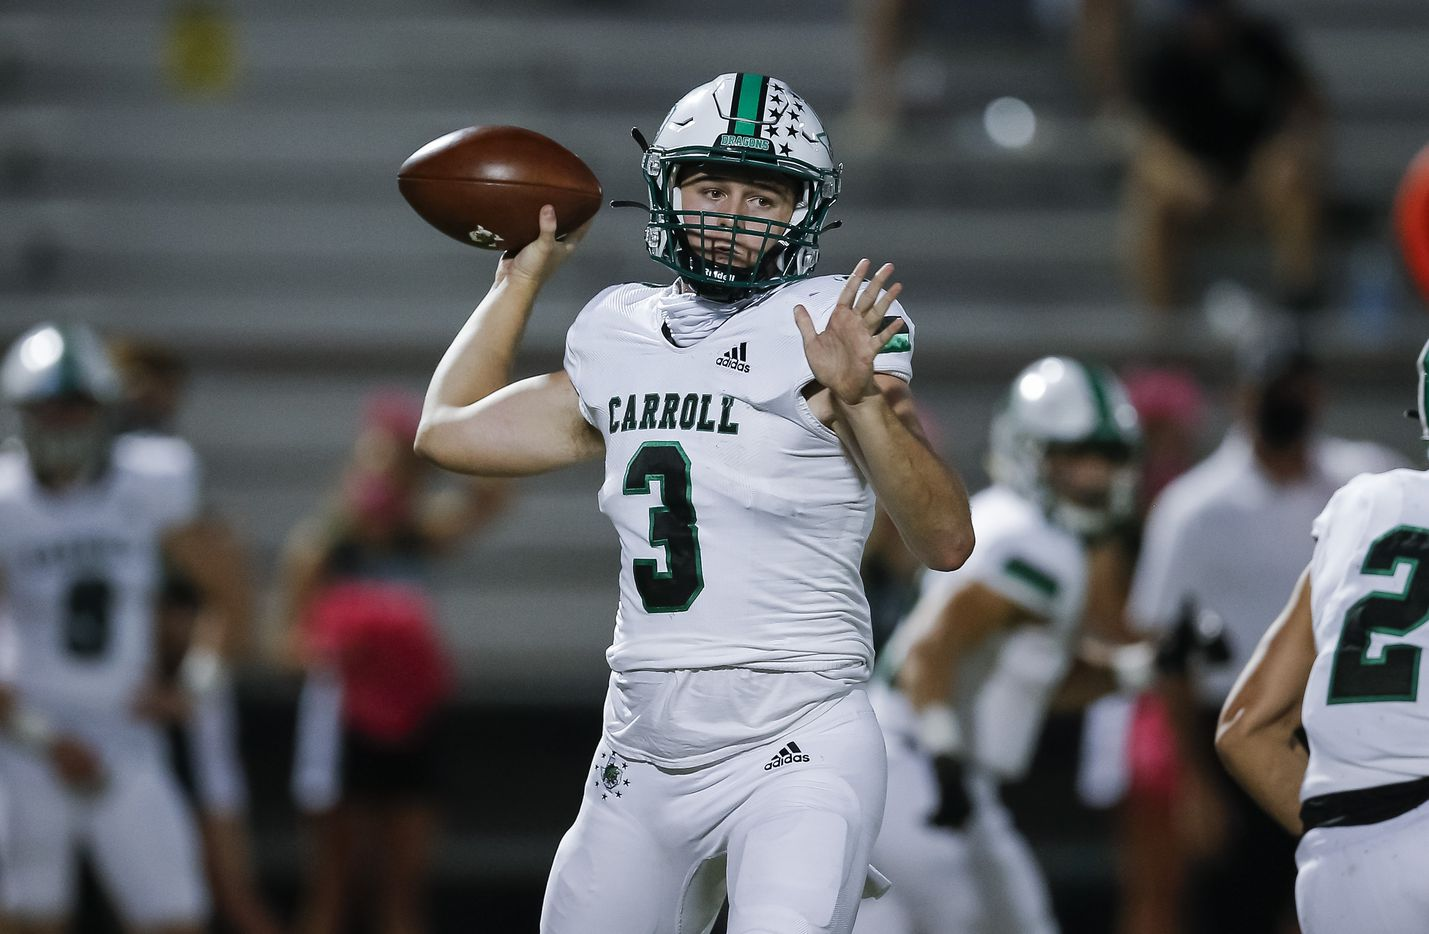 Southlake Carroll junior quarterback Quinn Ewers (3) throws during the first half of a high school football game against Rockwall at Wilkerson-Sanders Stadium in Rockwall, Thursday, October 8, 2020. (Brandon Wade/Special Contributor)